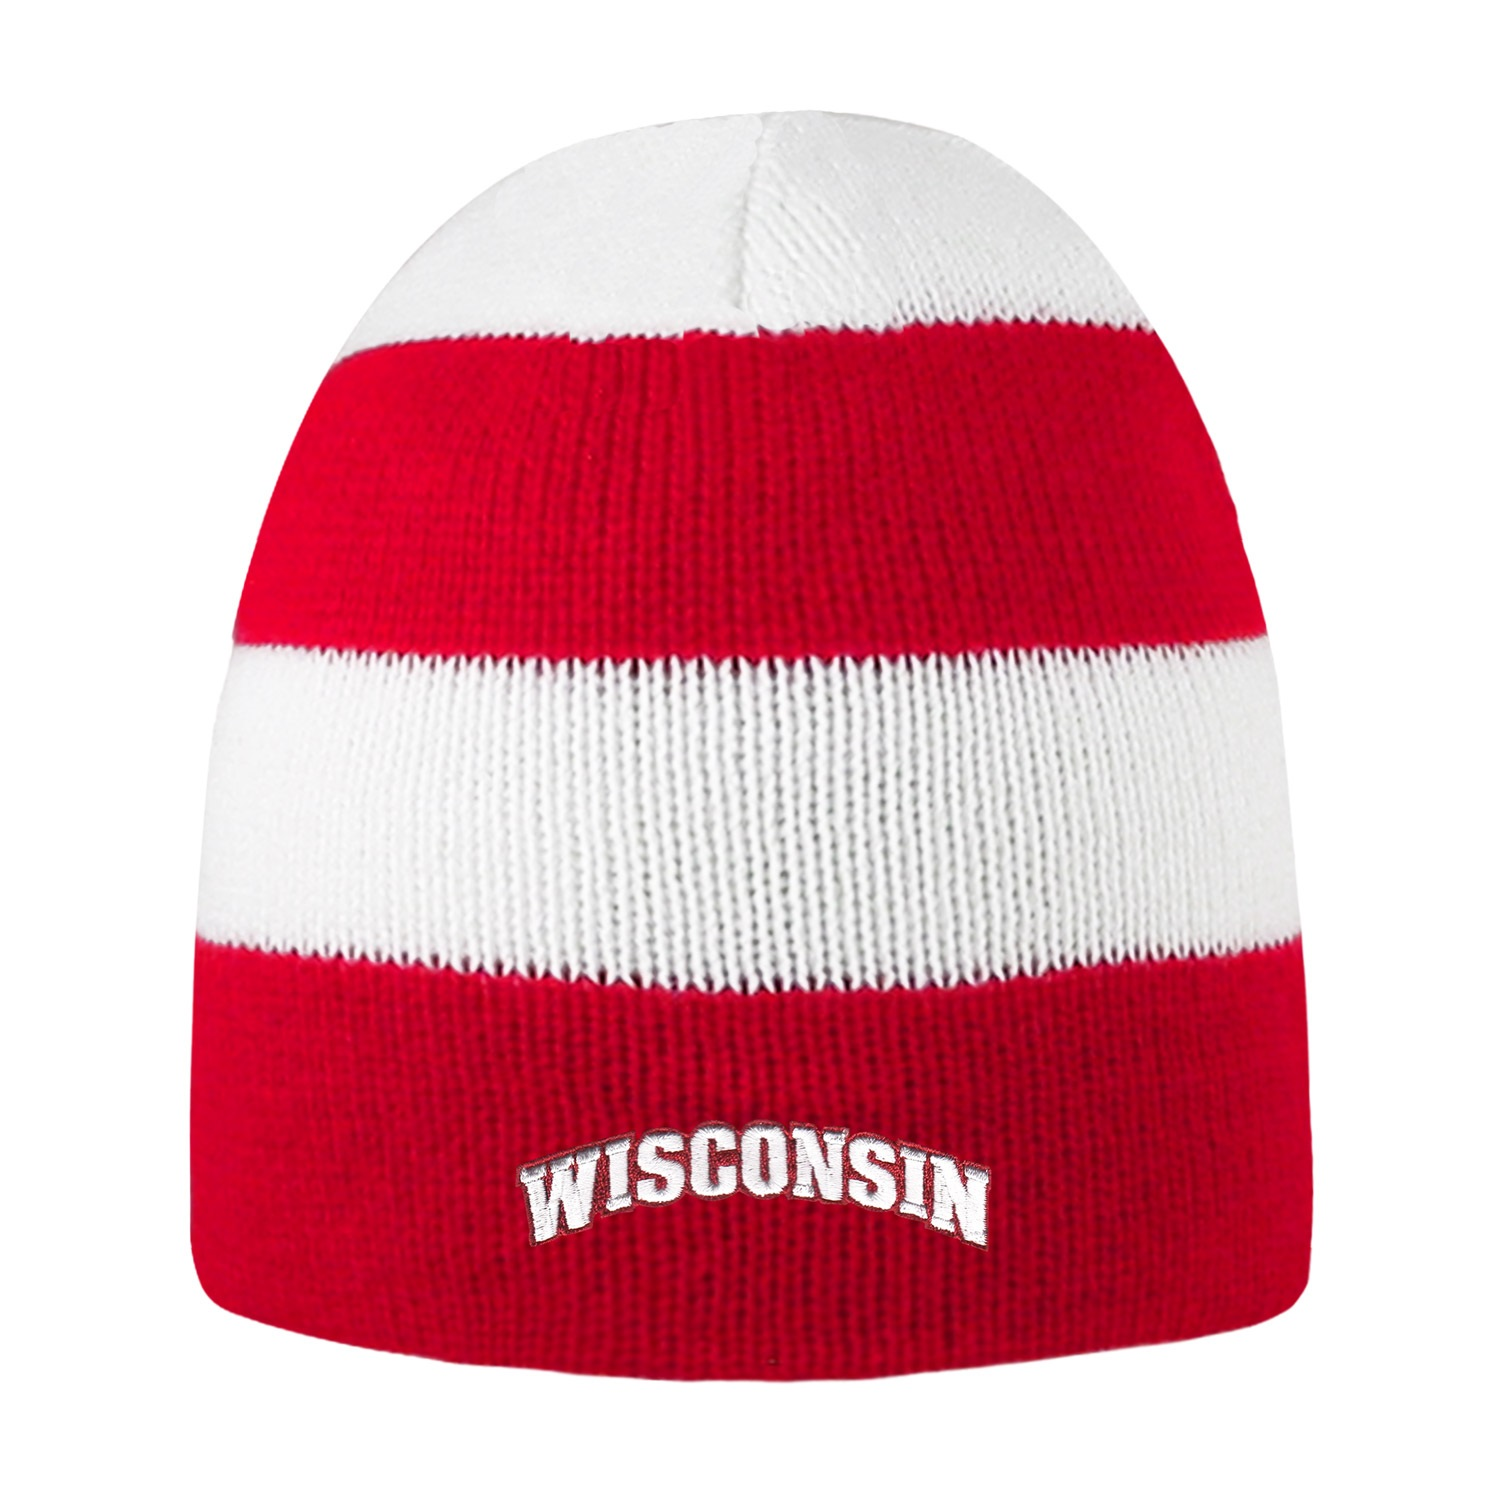 University of Wisconsin Rugby Striped Knit Beanie